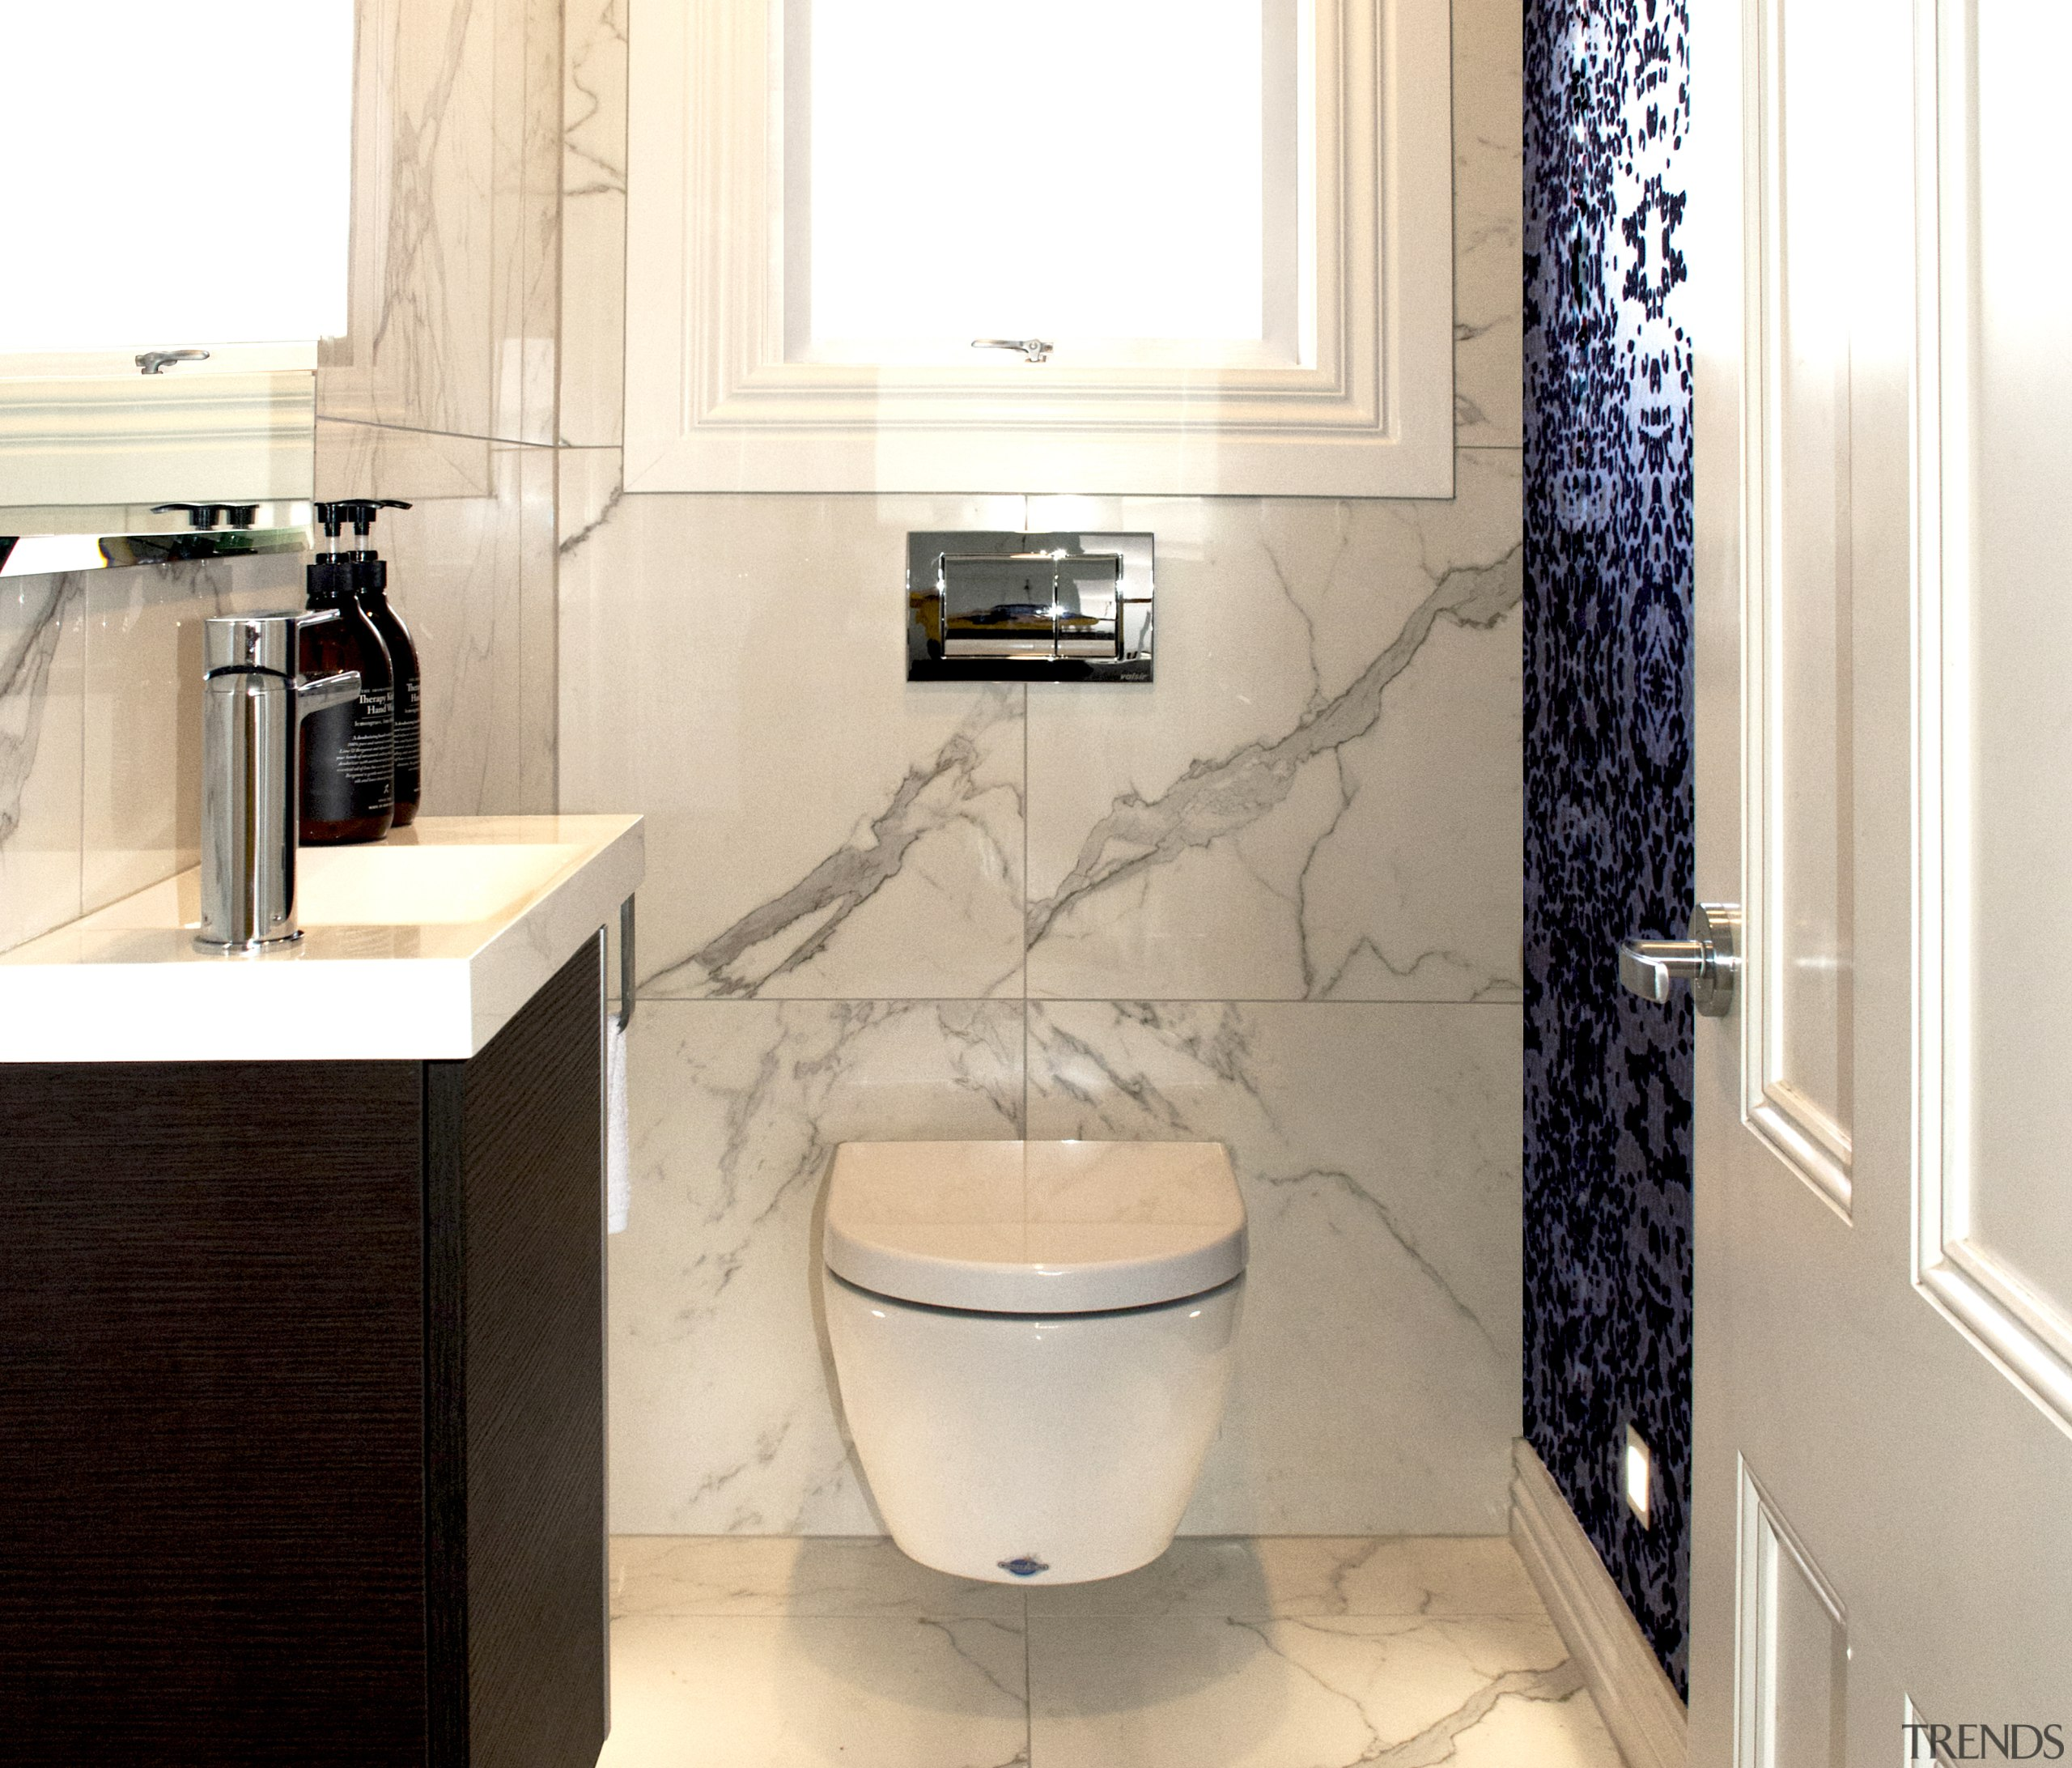 Being used solely by the children, the wallpaper architecture, bathroom, bathroom accessory, bathroom cabinet, bidet, floor, home, interior design, wallpaper, marble, material property, plumbing, plumbing fixture, property, room, sink, tap, tile, toilet, toilet seat, wall, white